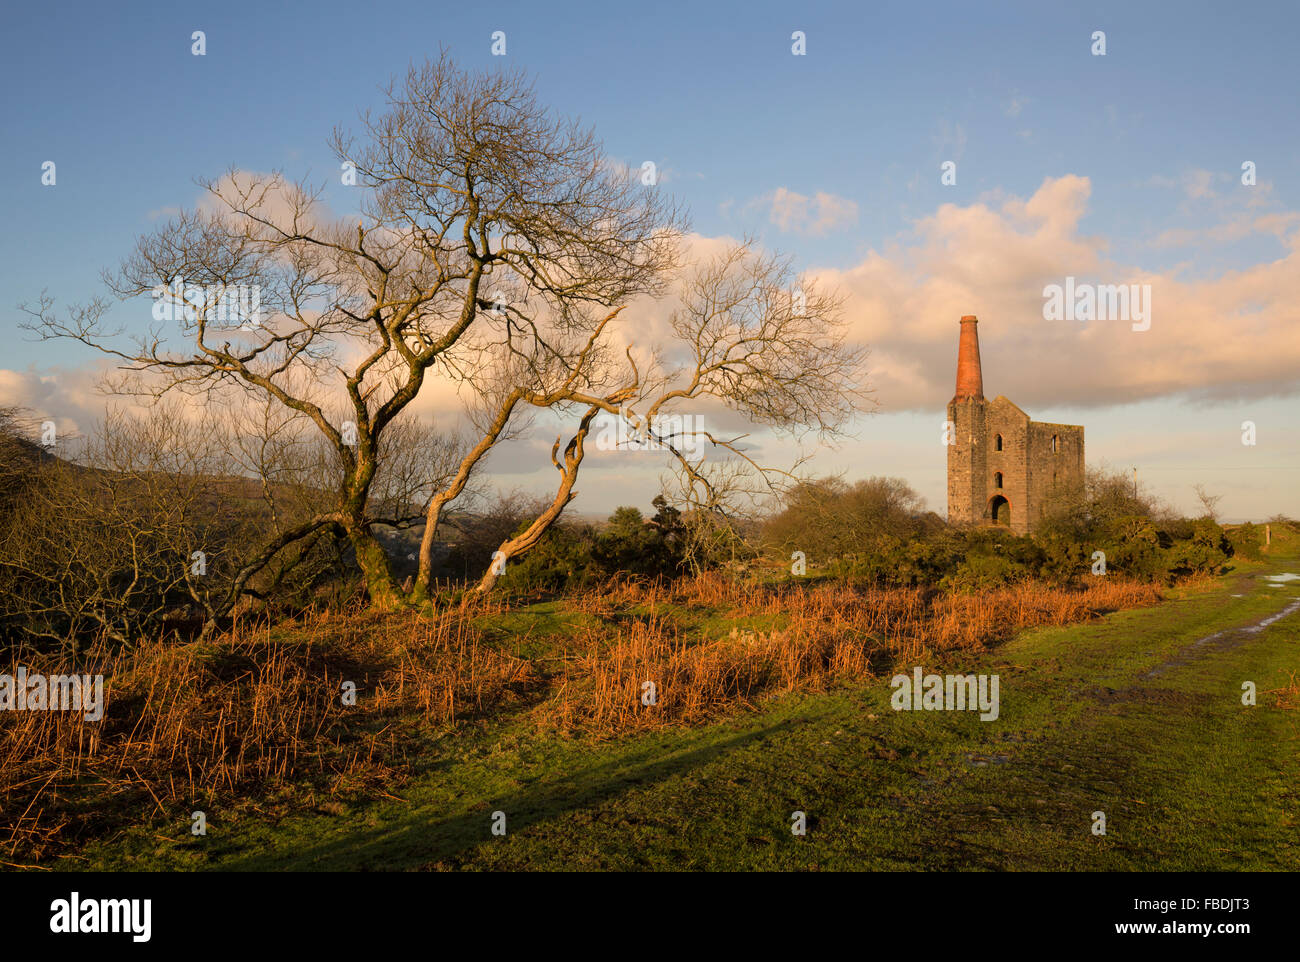 Warm evening light over the Prince of Wales Engine House in East Cornwall - Stock Image